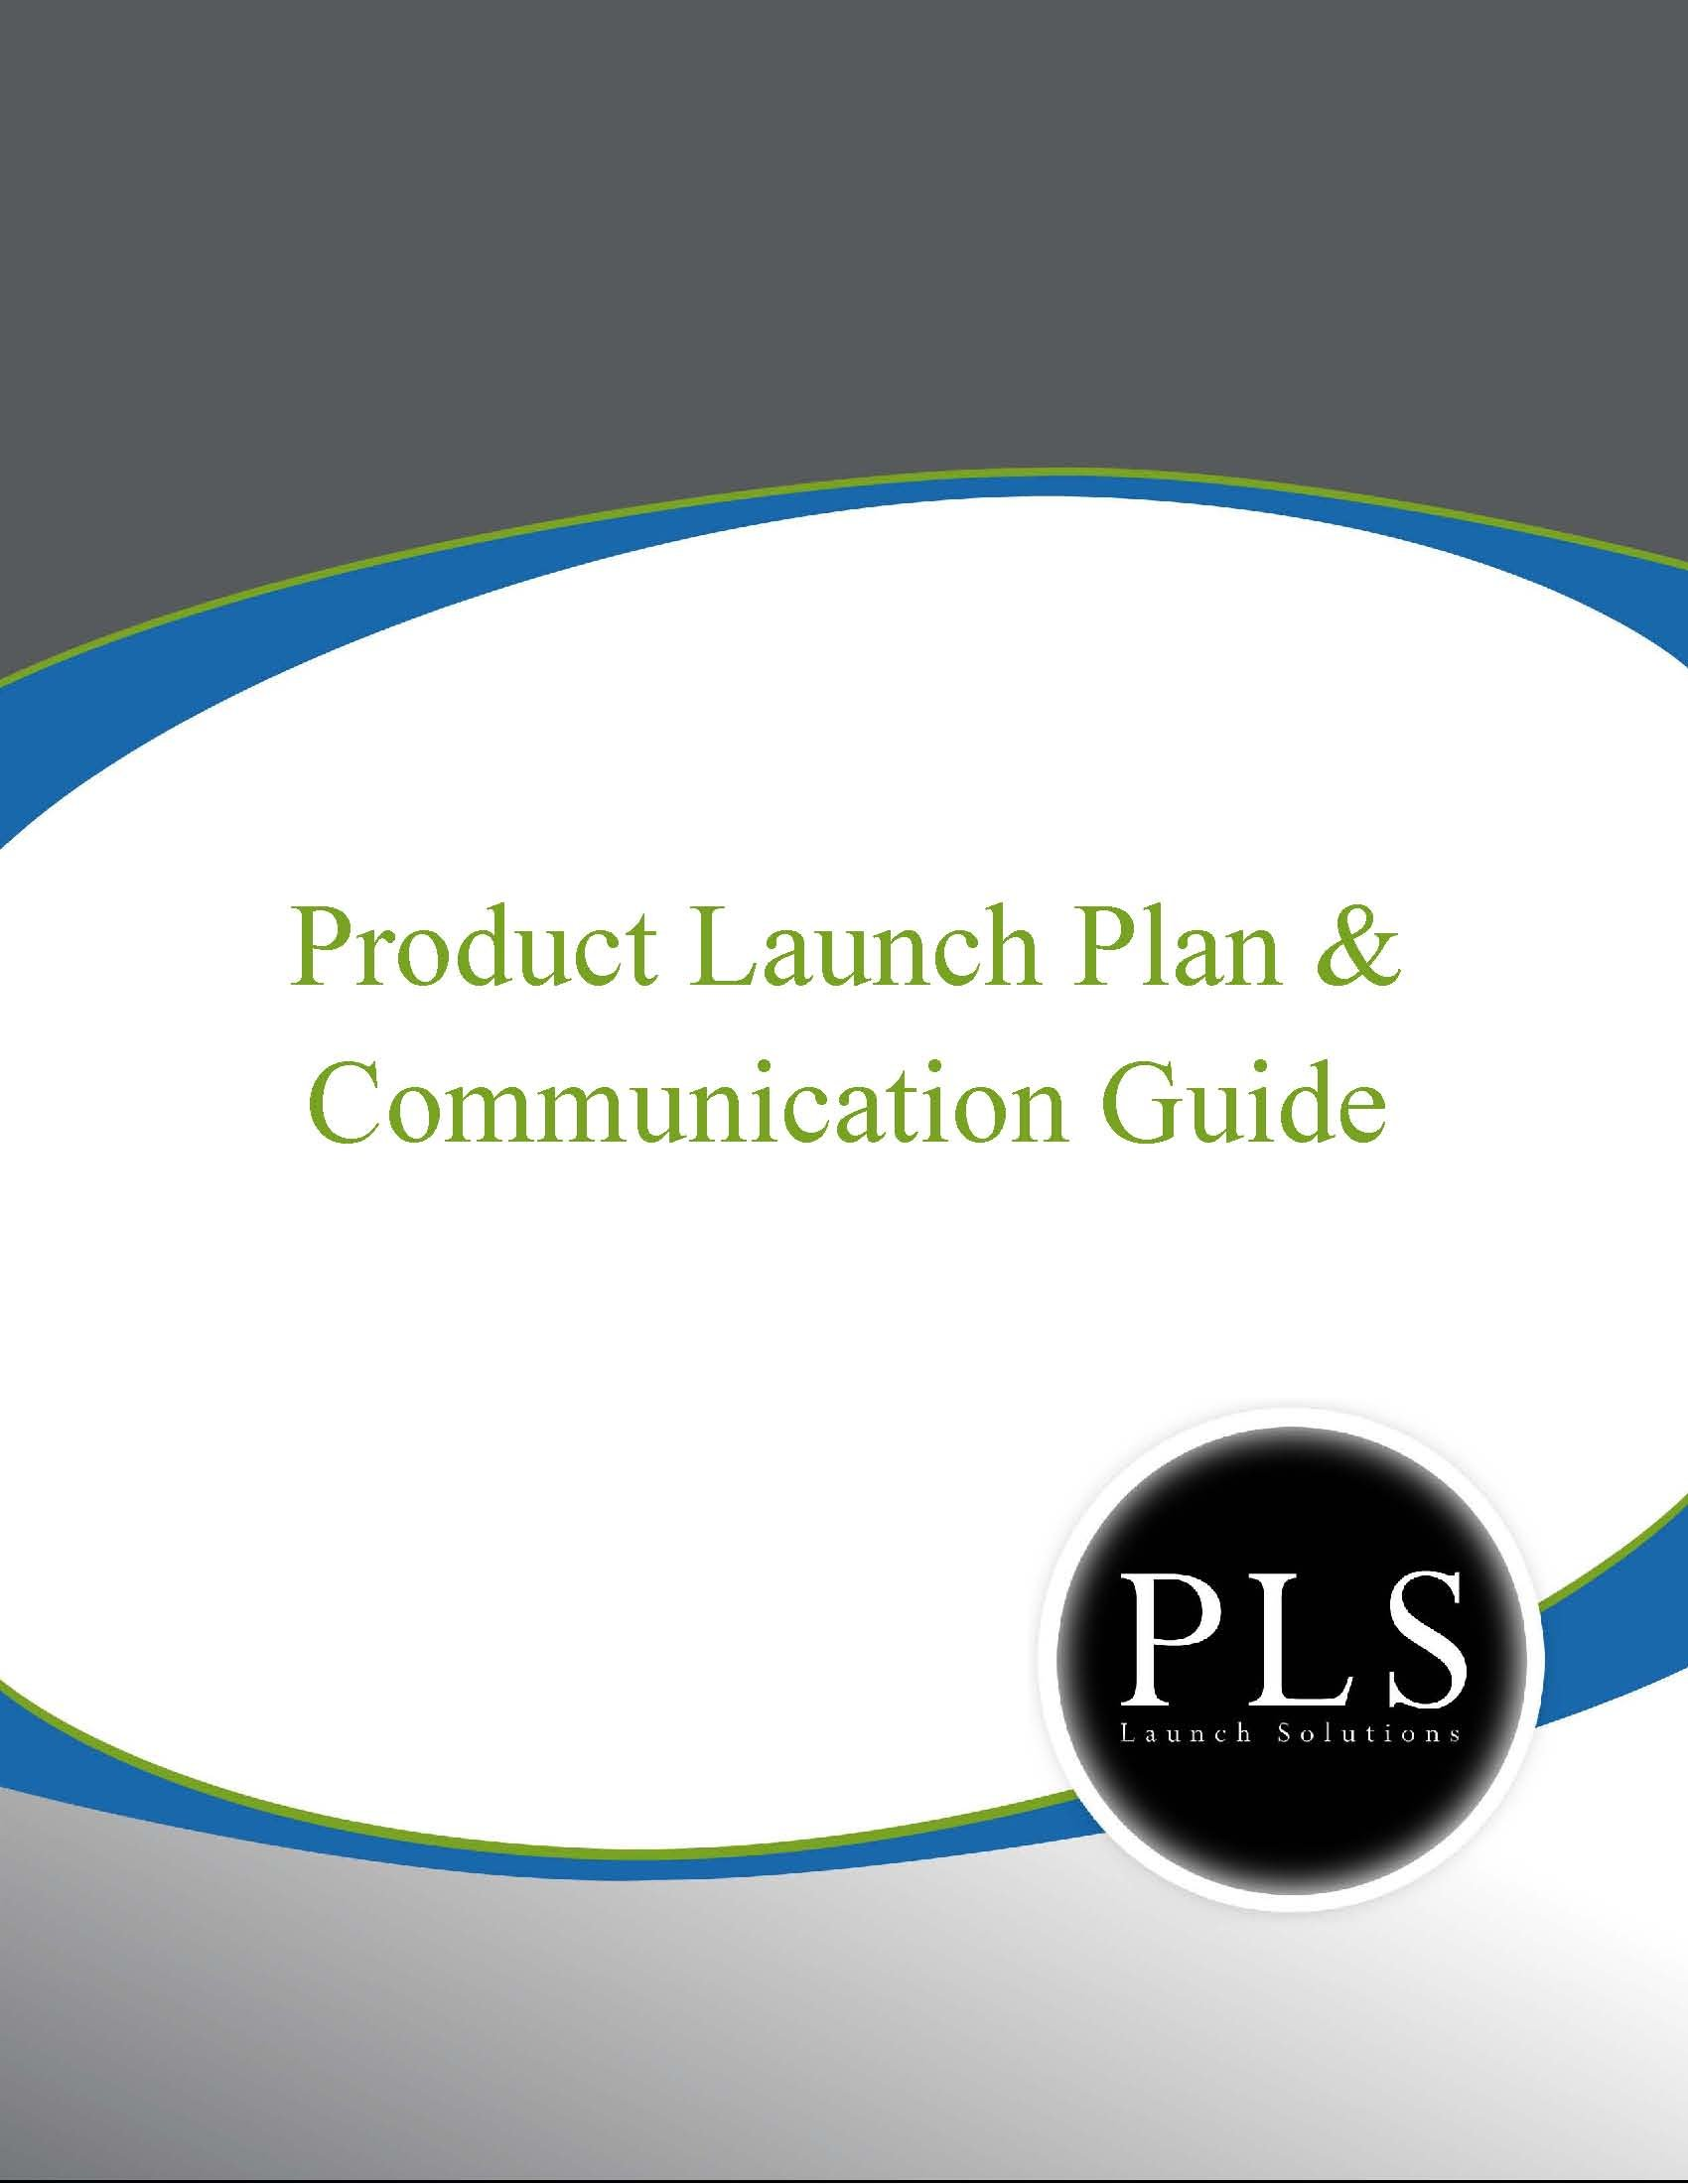 communication plan for your product launch Developing a communication plan can help focus your message and reach   around the world, instituting a boycott of nestle products that lasted for over ten  years  someone can forget to e-mail a press release, or forget to include a  phone.